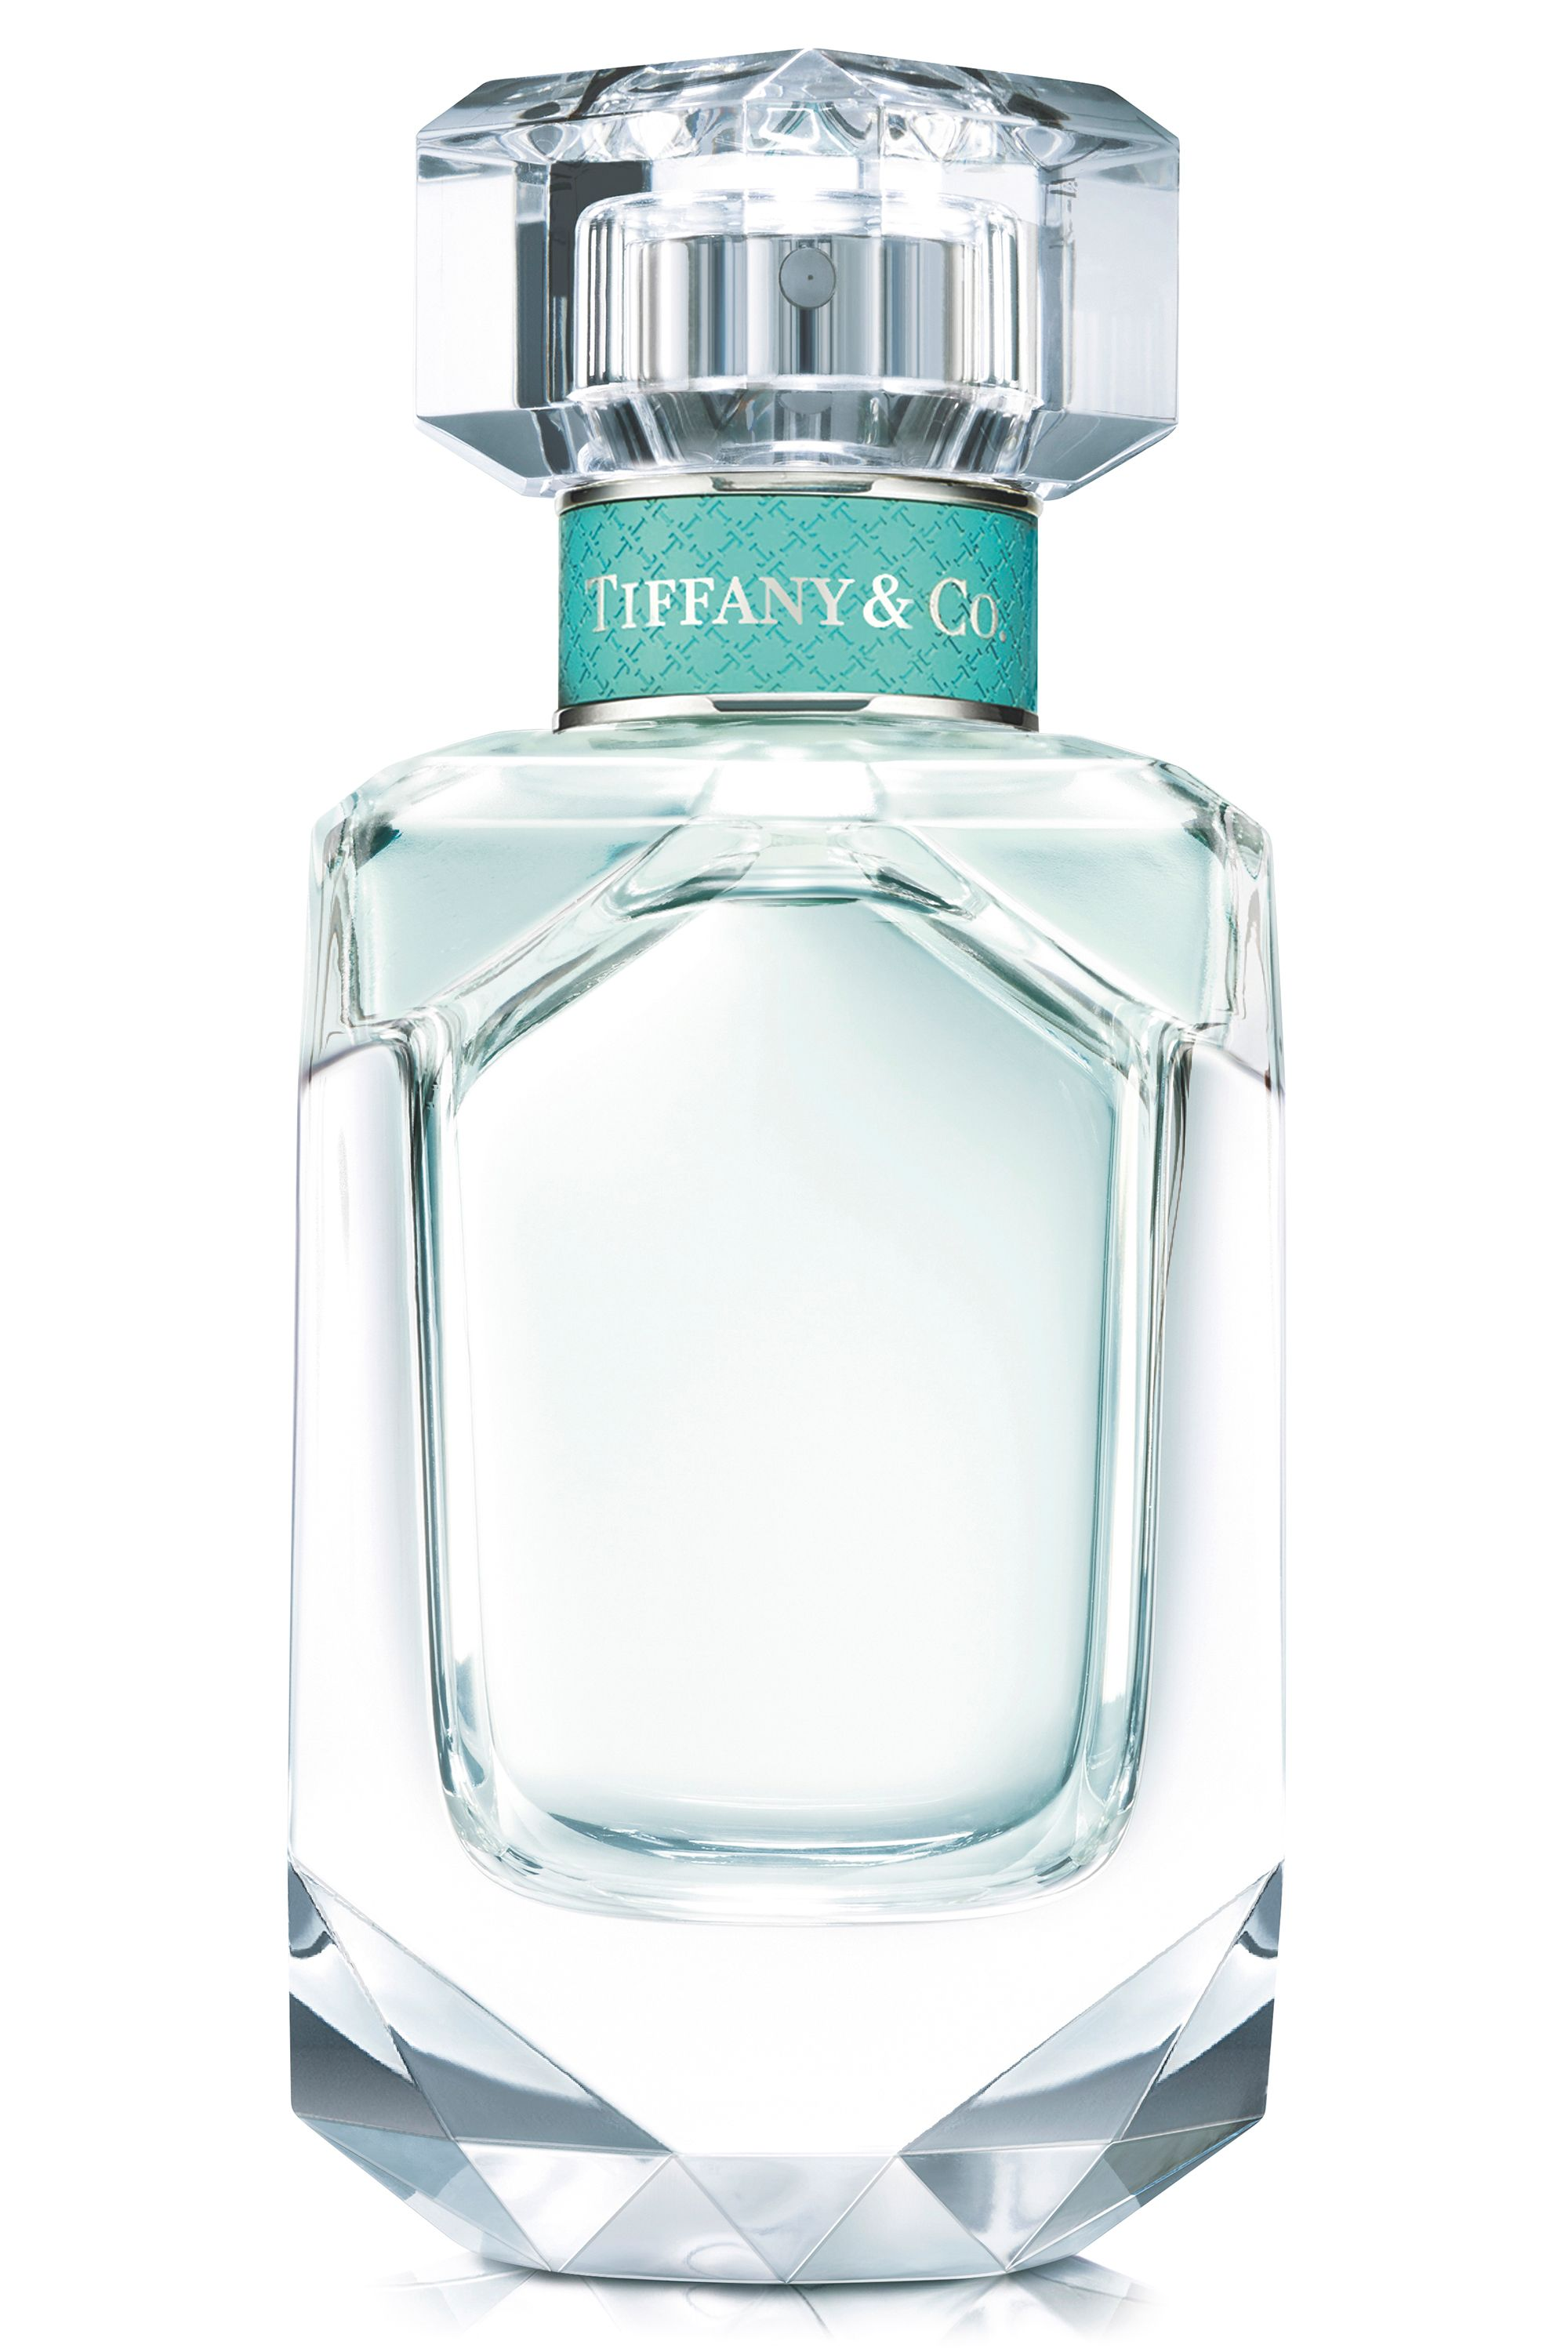 Best Perfumes 2019 Best Women's Perfume 2019   27 fragrances you'll fall in love with